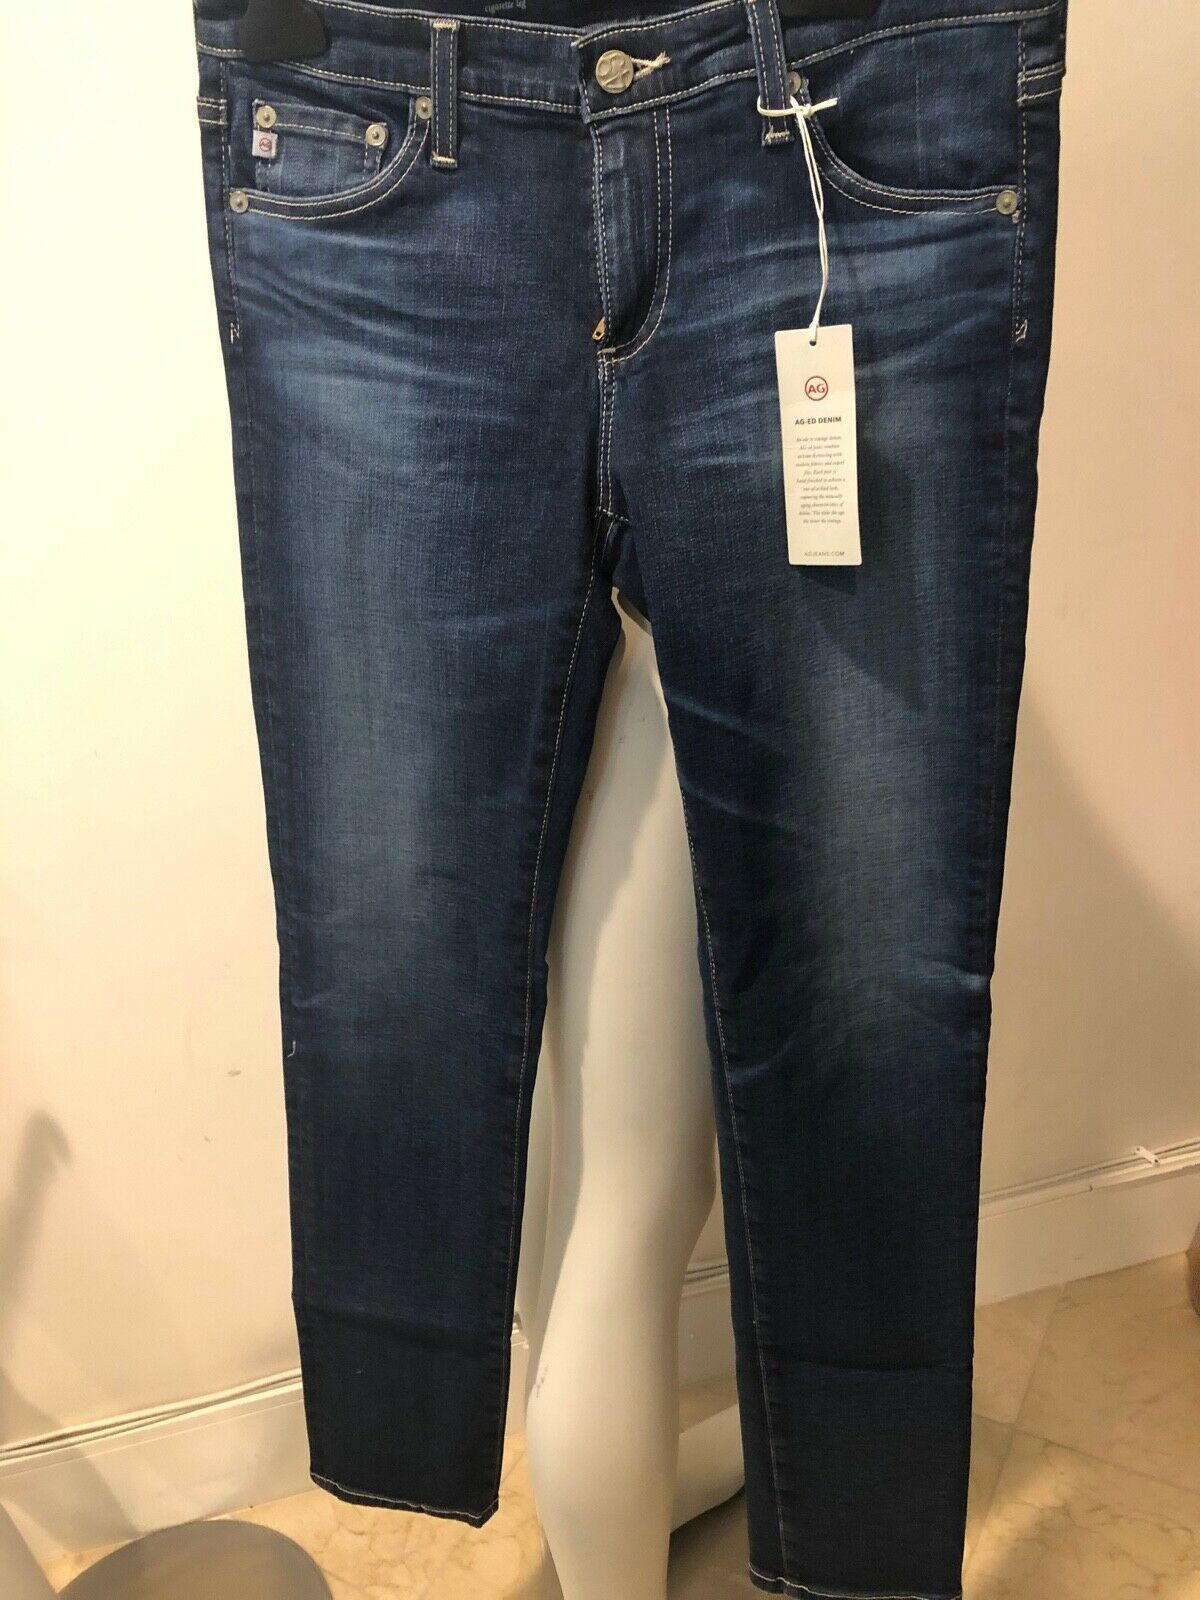 NWT    ADRIANO goldSCHMIED THE STILT CIGARETTE LEG JEANS SIZE 28   SHARWEI